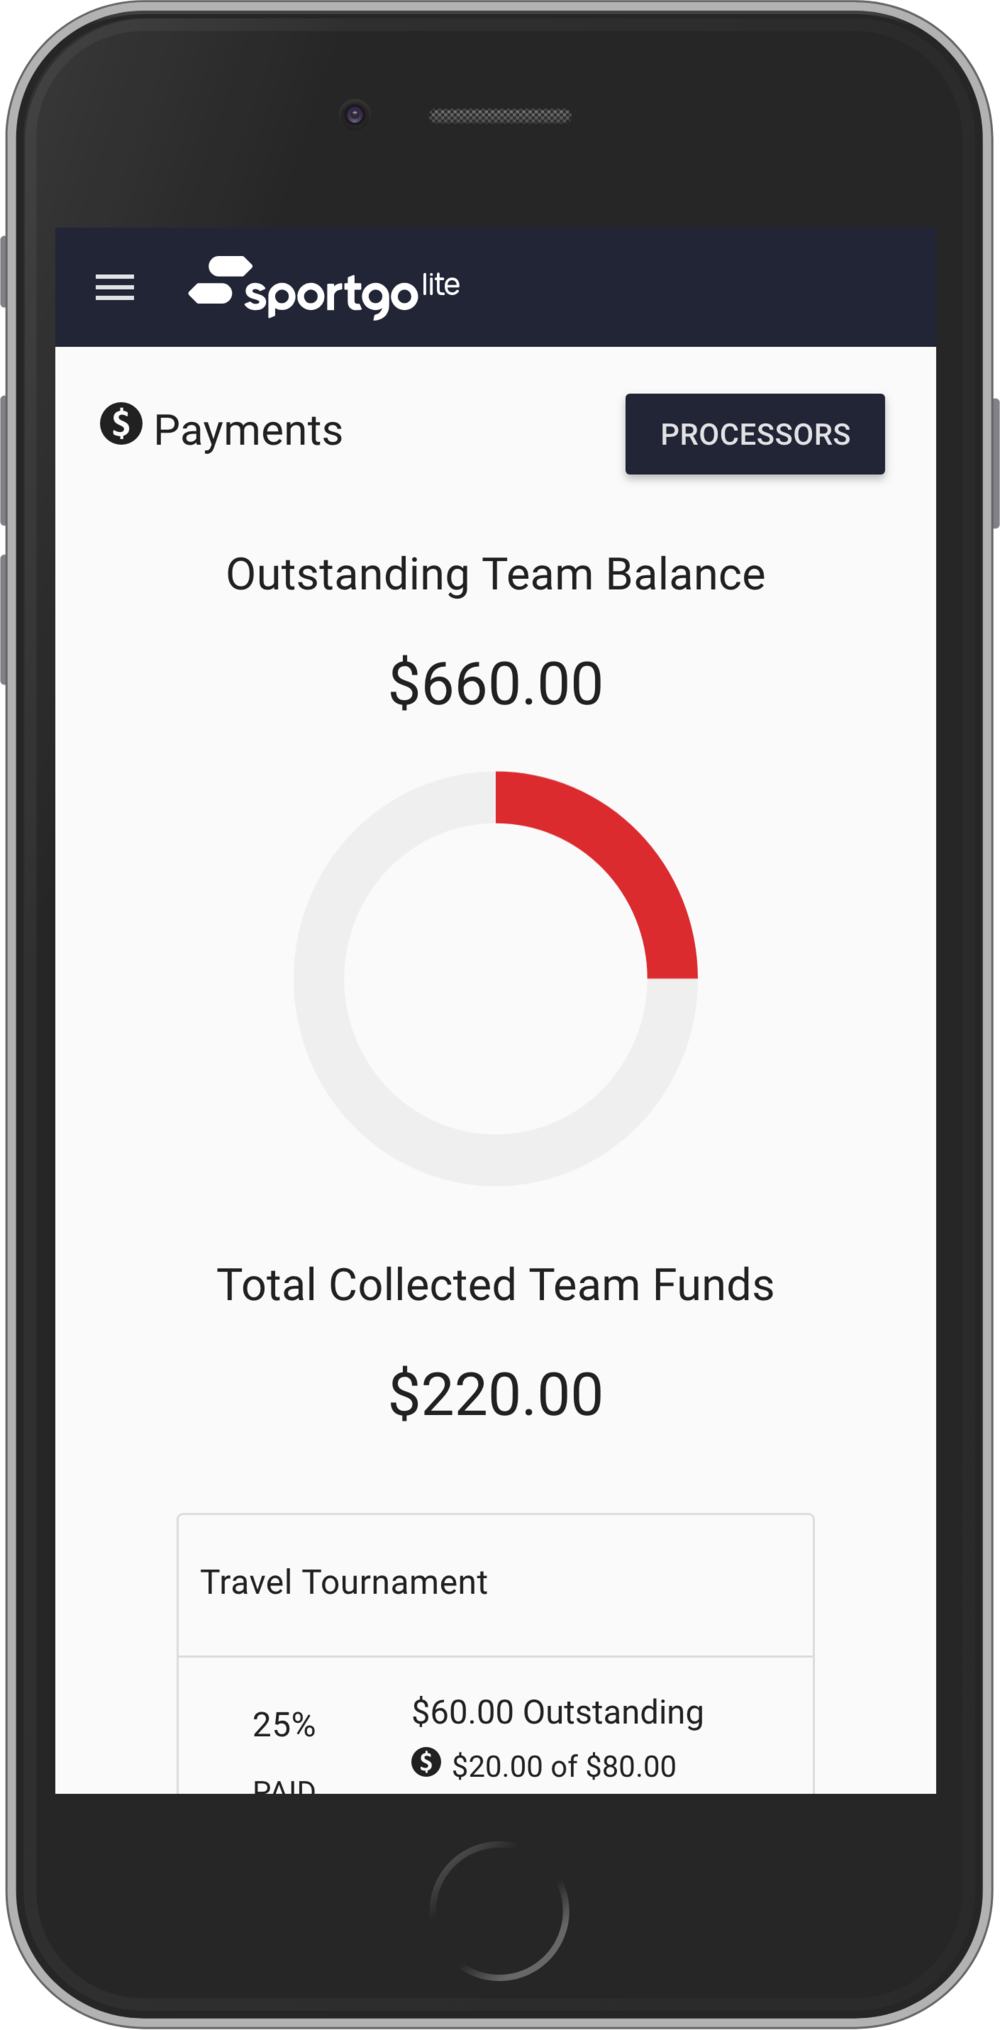 Payment Collection & Tracking - Quickly assign fees, collect and track money from your entire team to avoid last minute payment hassles.